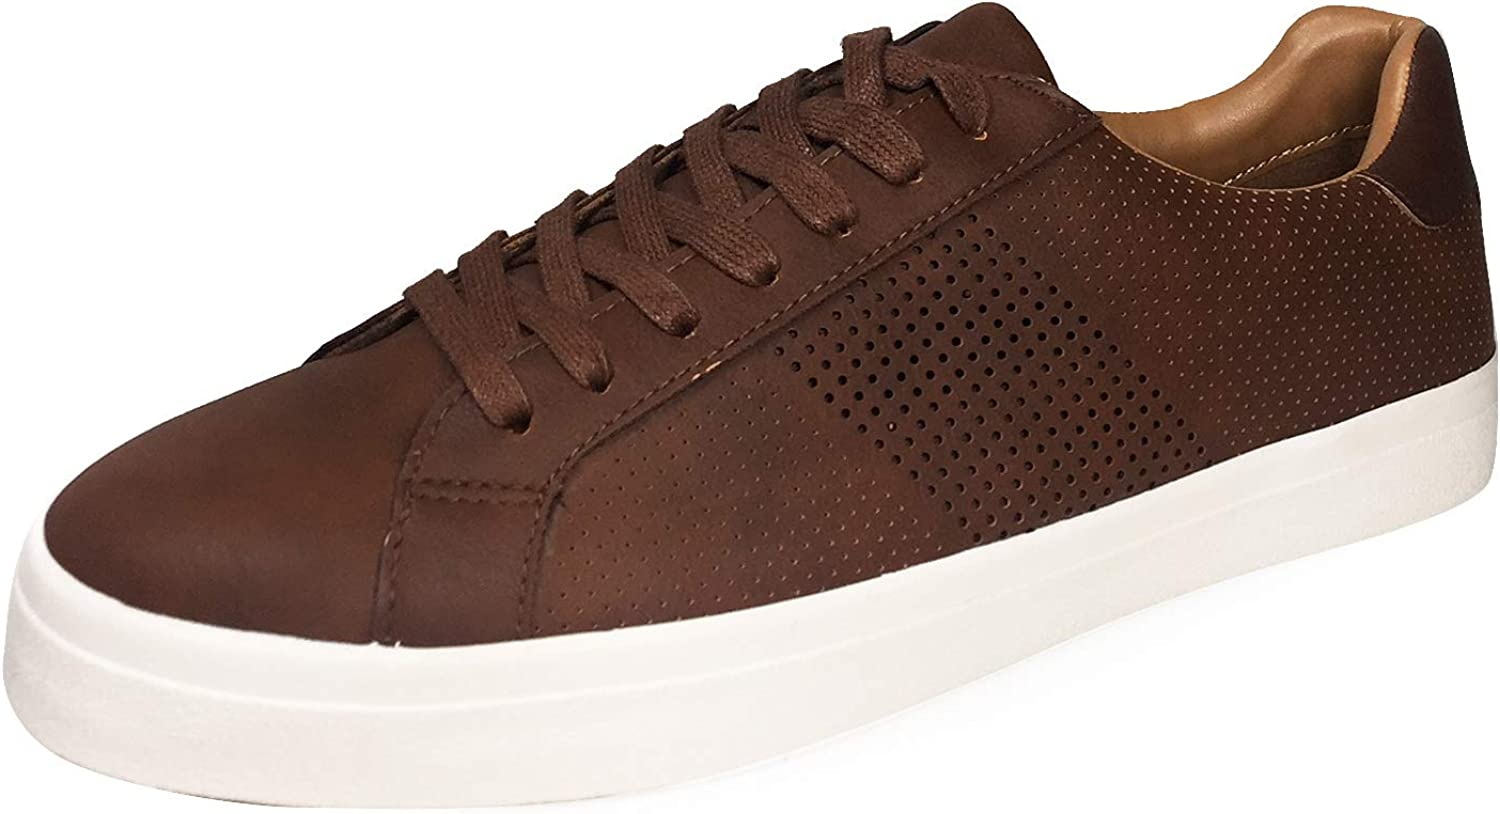 Zara Men's Micro-Perforated Plimsolls 5200 302